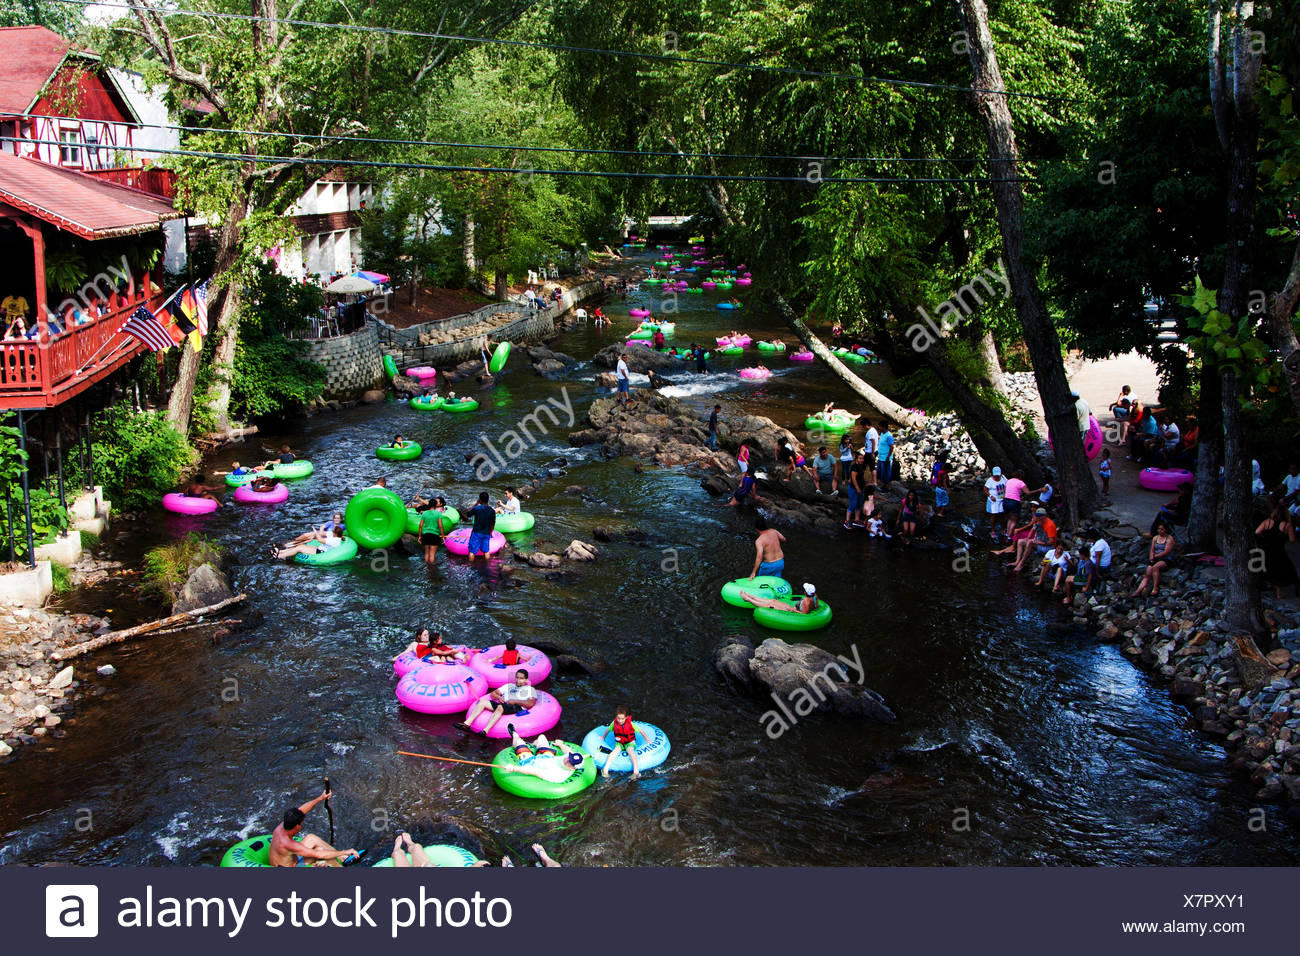 Lazy River Stock Photos & Lazy River Stock Images - Alamy